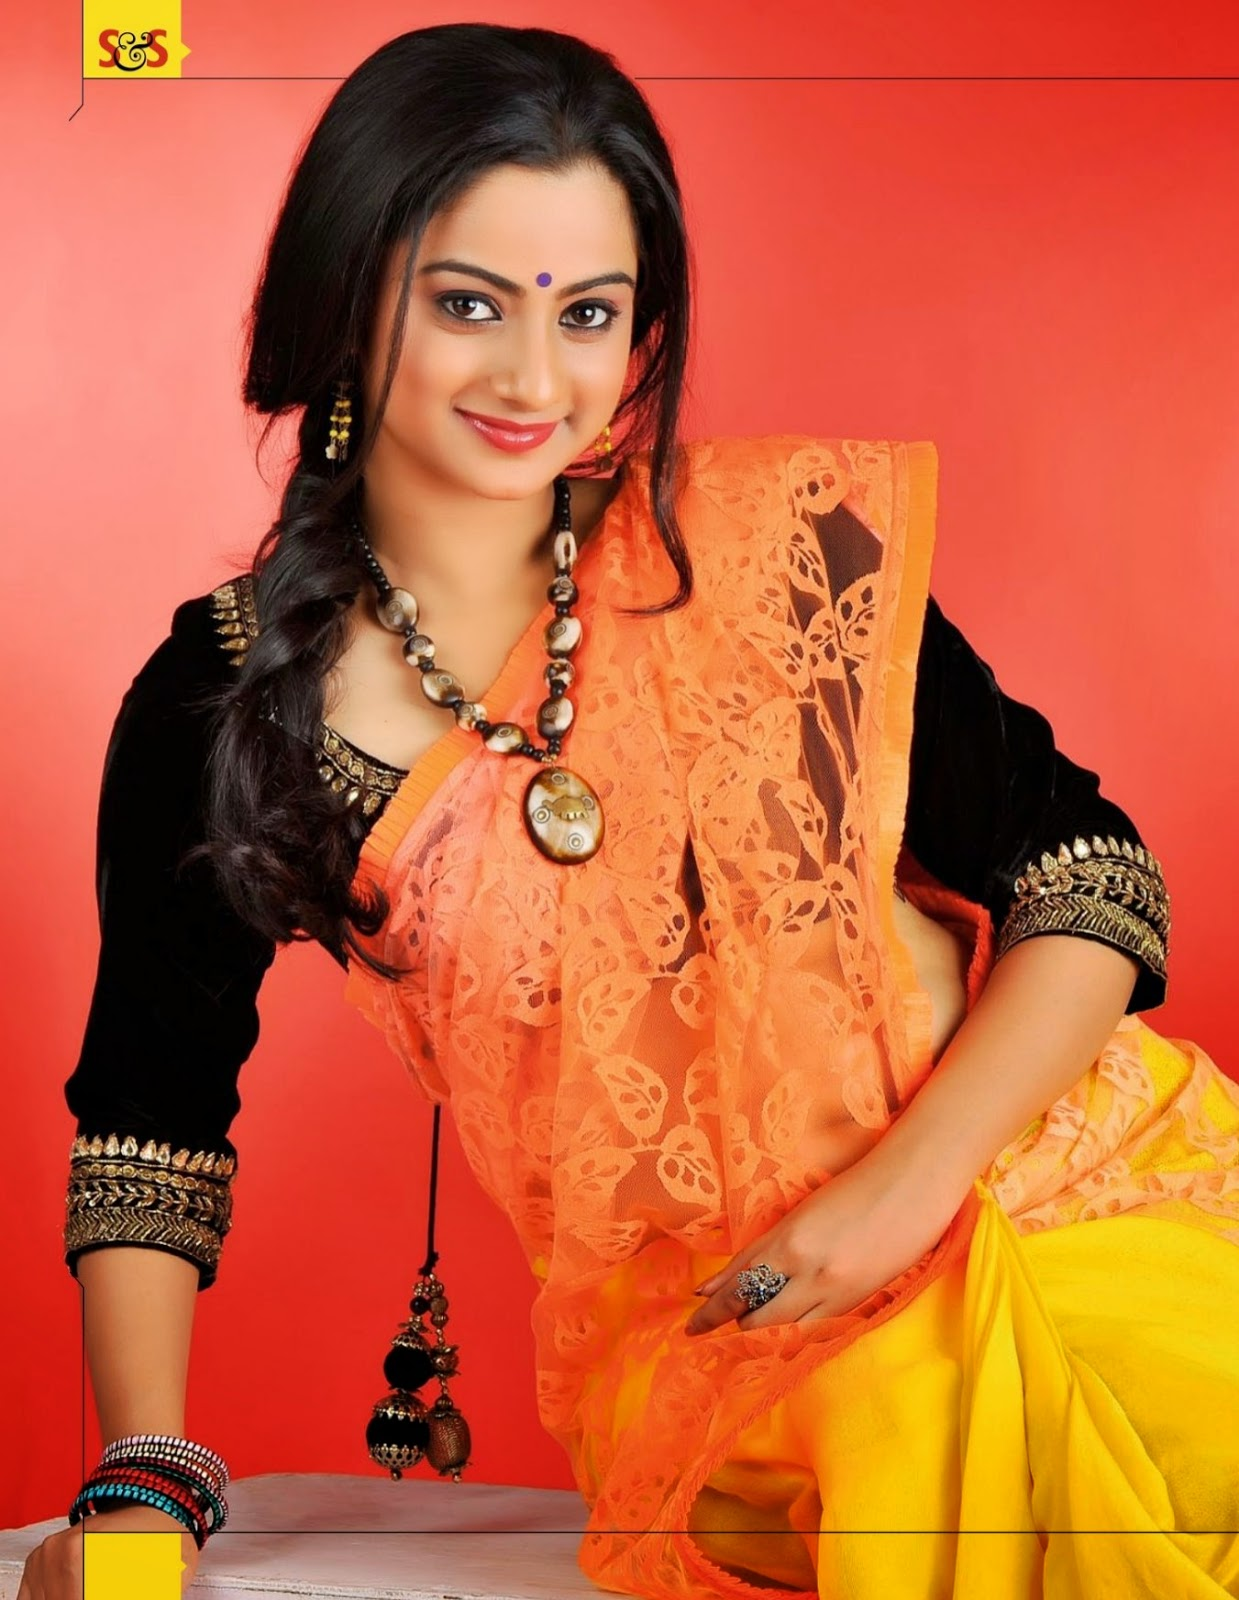 indian actress hot spicy pics unlimited!!!!!!!!!!!!!: namitha pramod